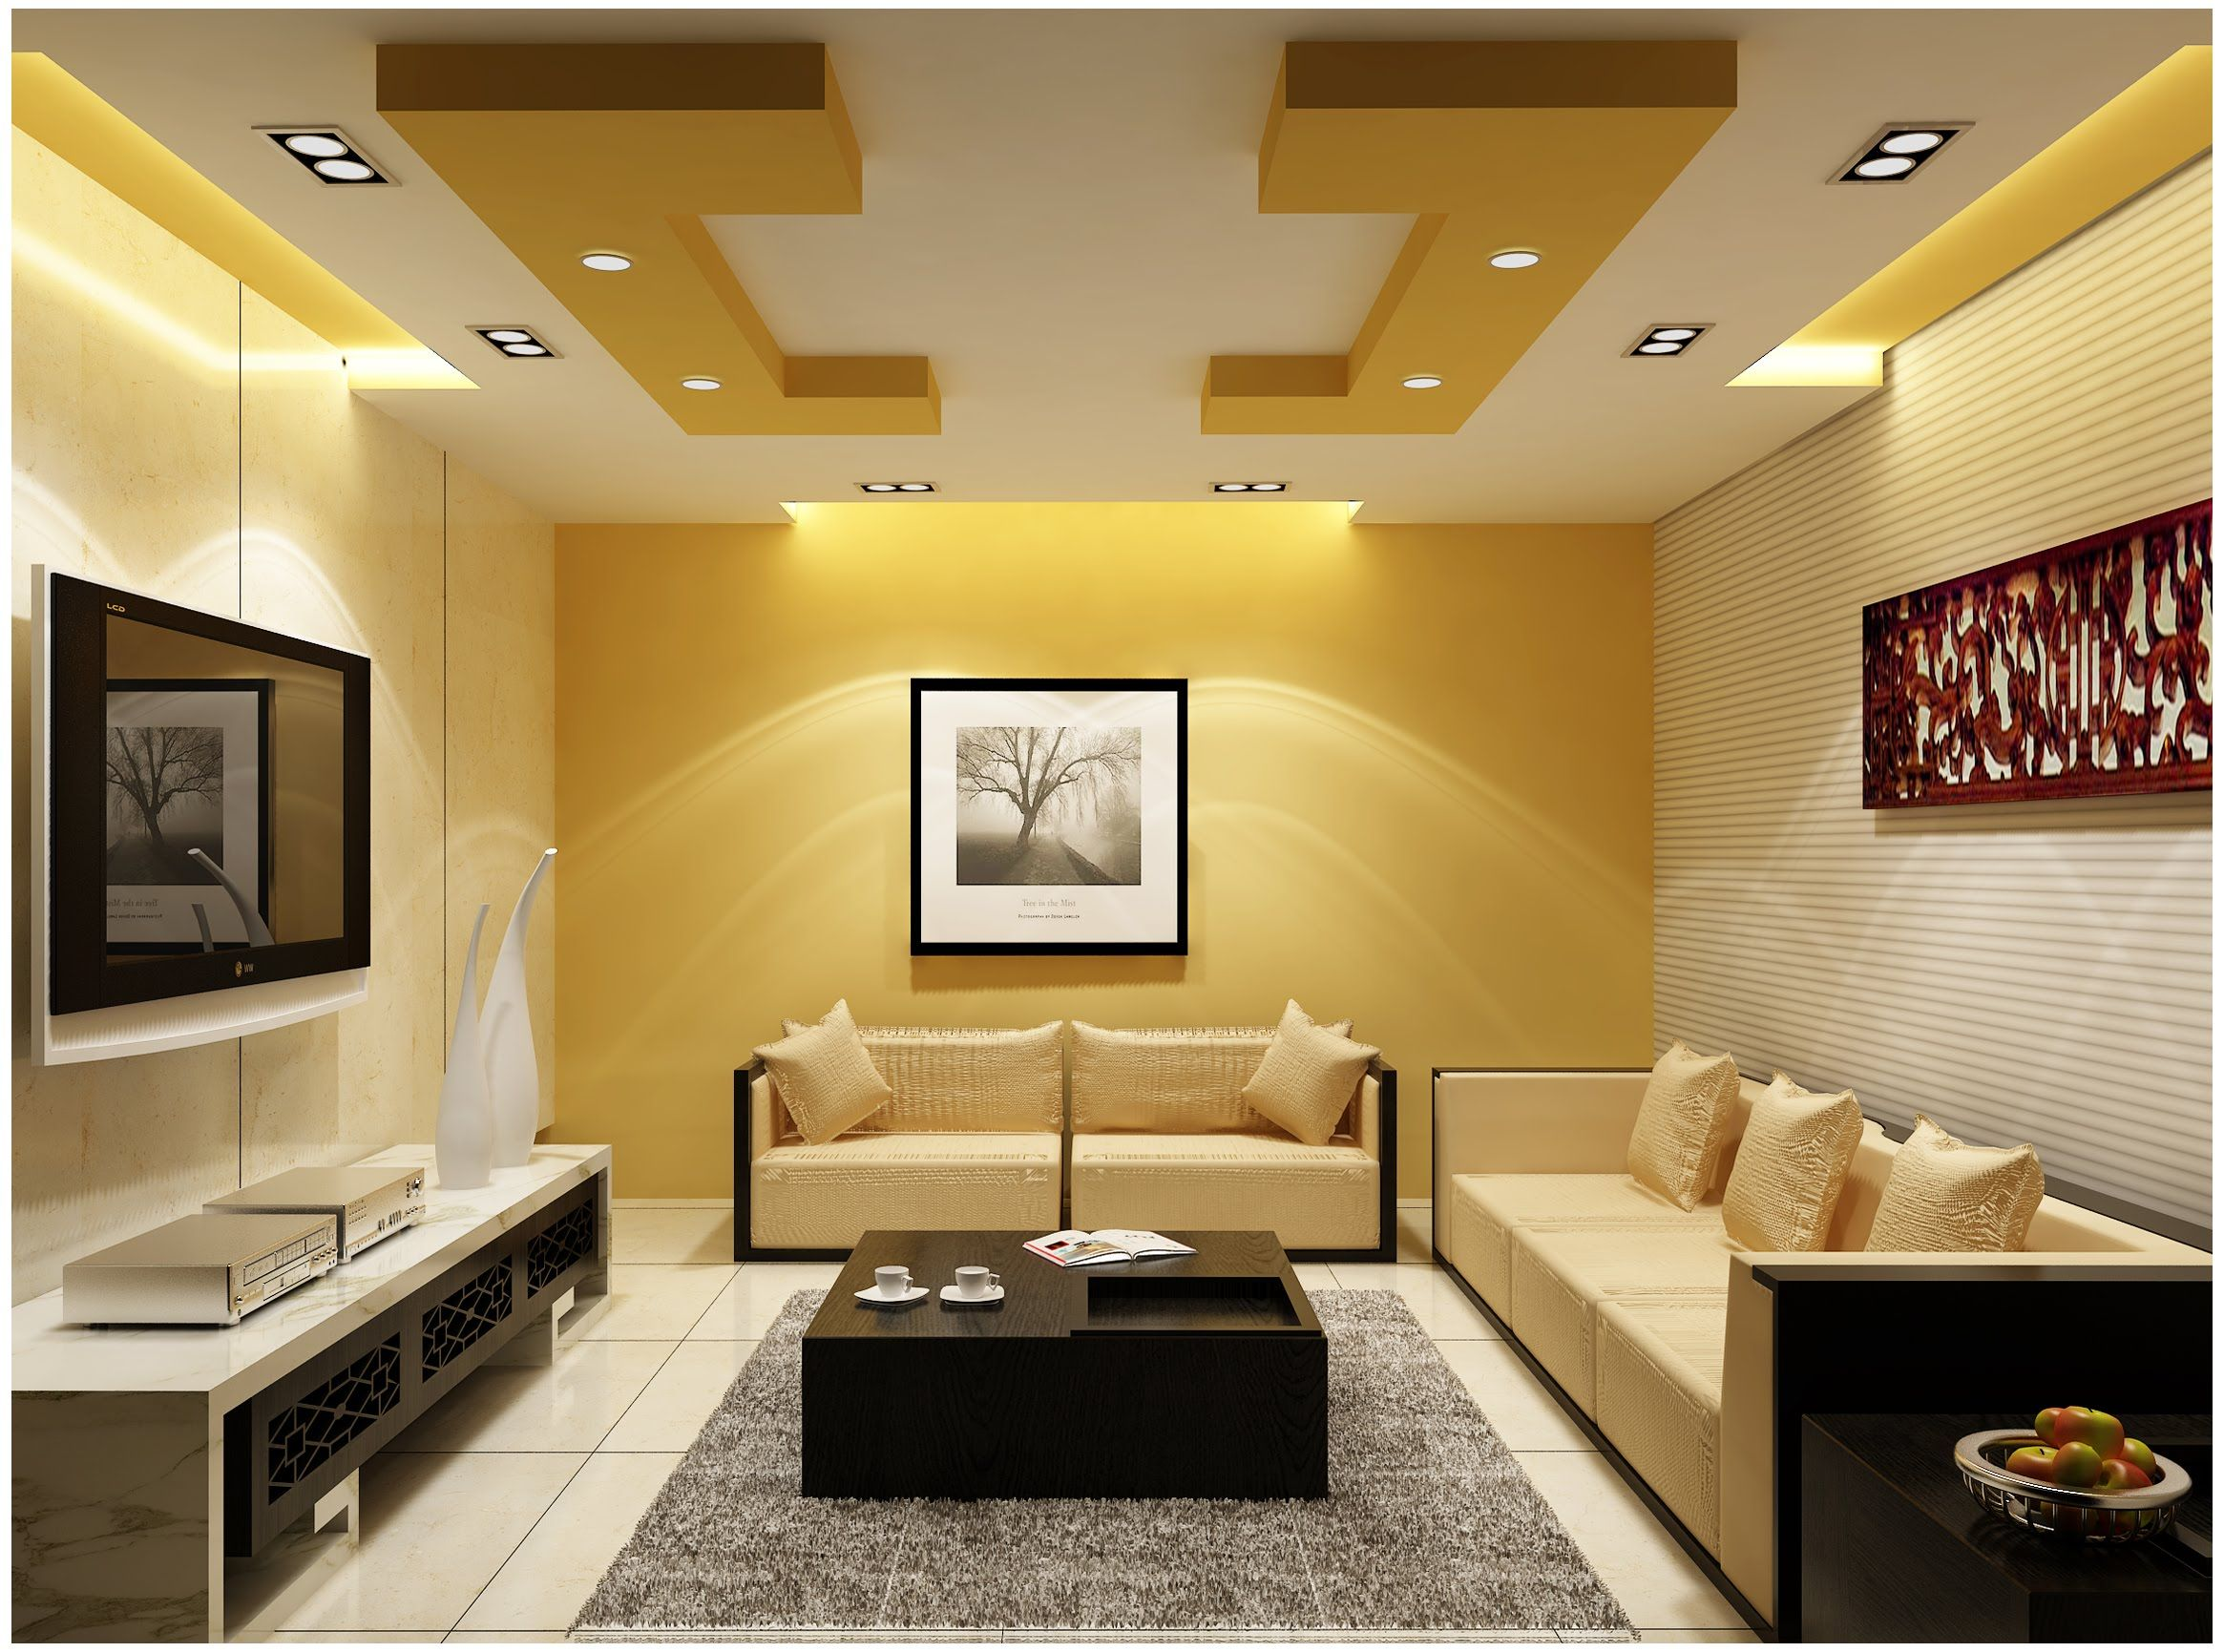 Residential Ceiling Design Pictures Ceiling Designs For Bedroom In